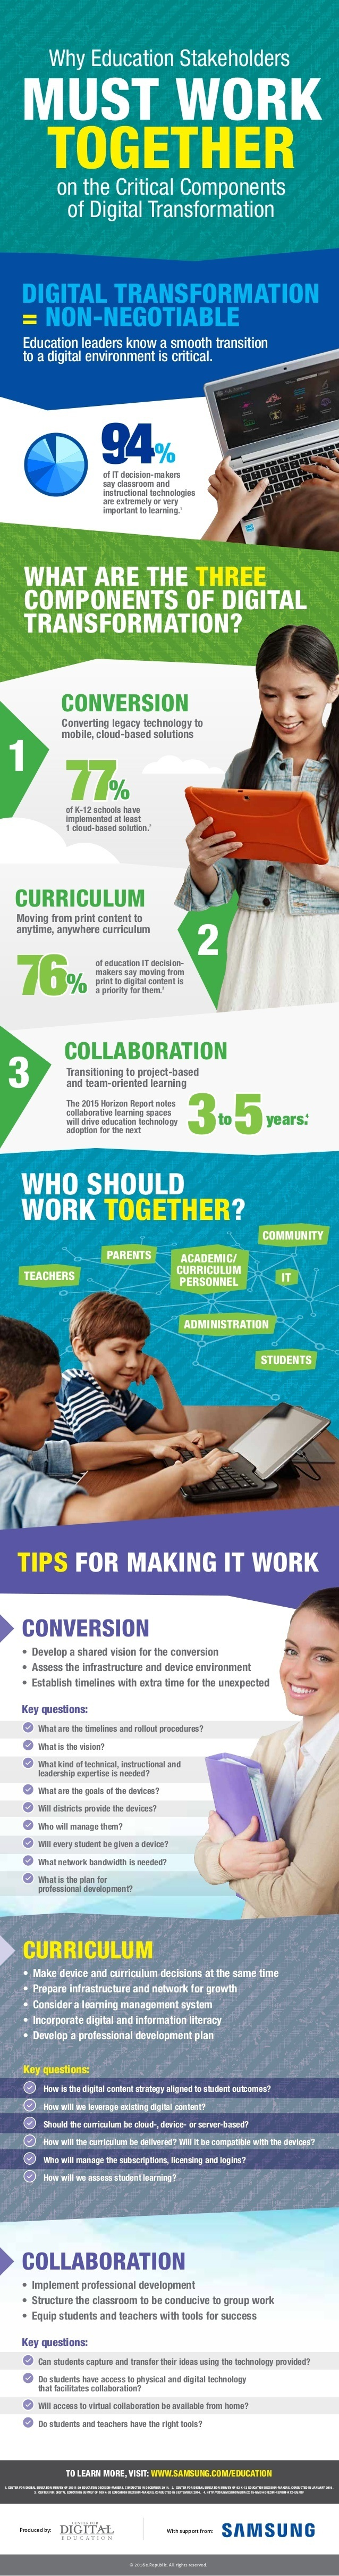 Why Education Stakeholders Must Collaborate towards Digital Transformation Infographic